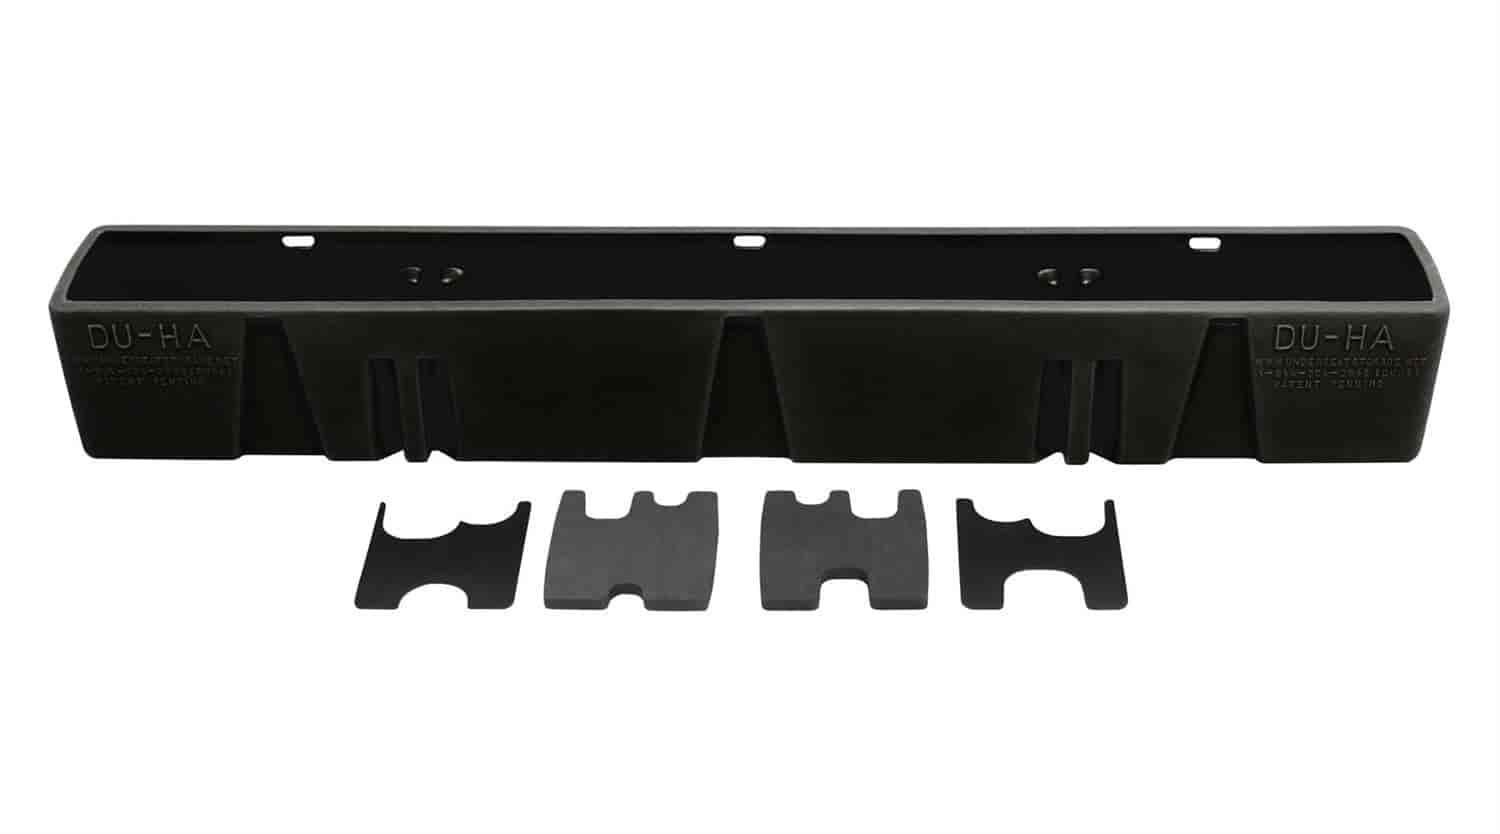 DU-HA 10023 - DU-HA Behind-the-Seat Storage Units for Trucks